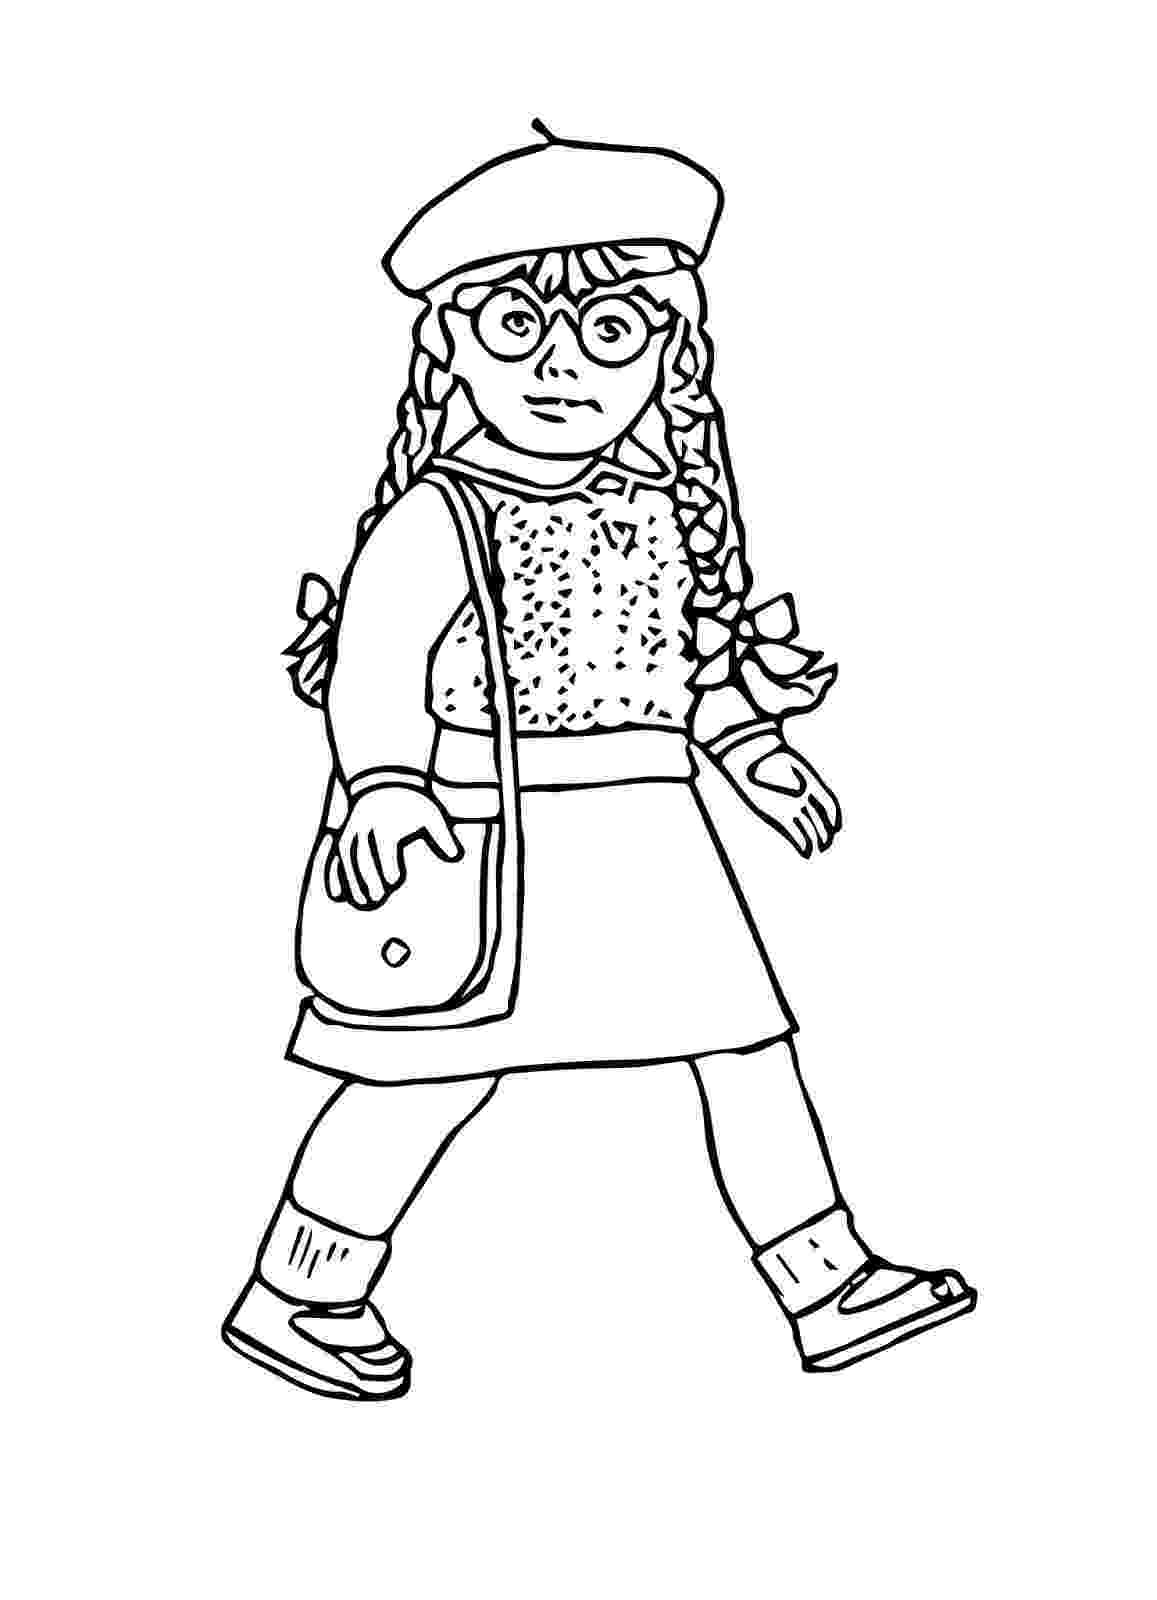 american girl doll coloring pages doll coloring pages getcoloringpagescom pages girl american coloring doll